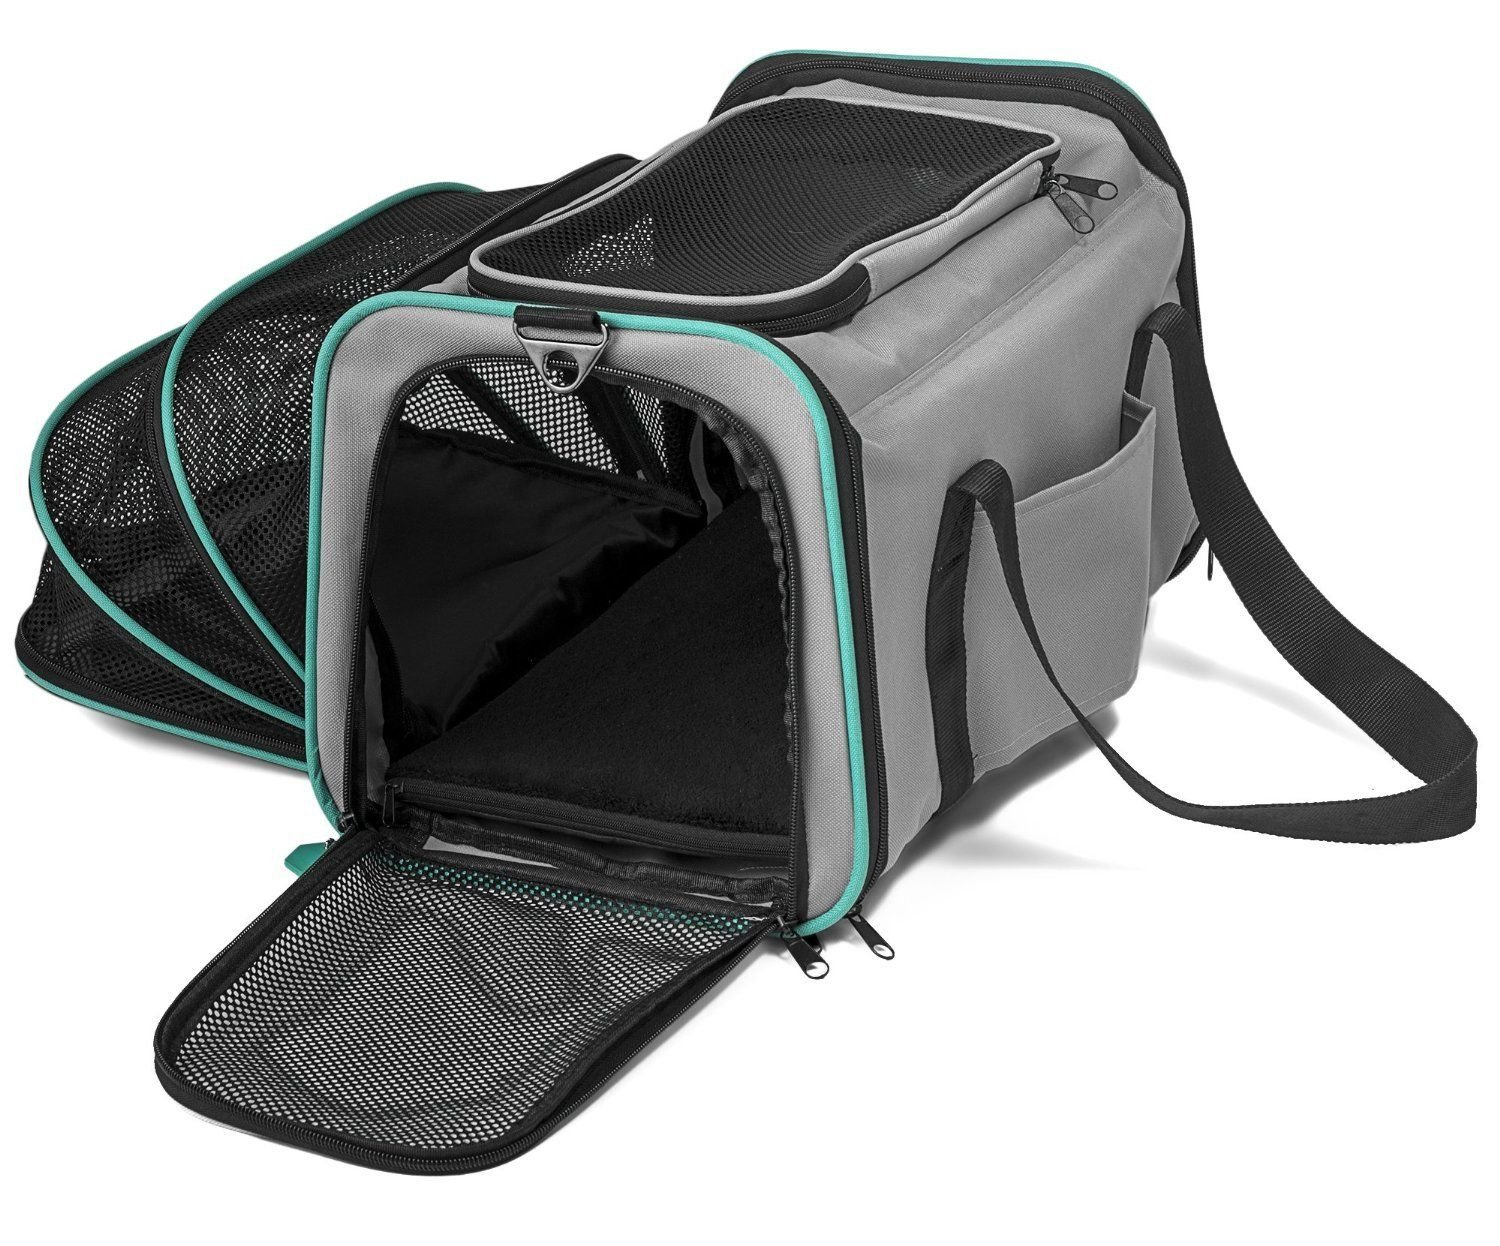 Pawdle Expandable and Foldable Pet Carrier Domestic Airline Approved 1844